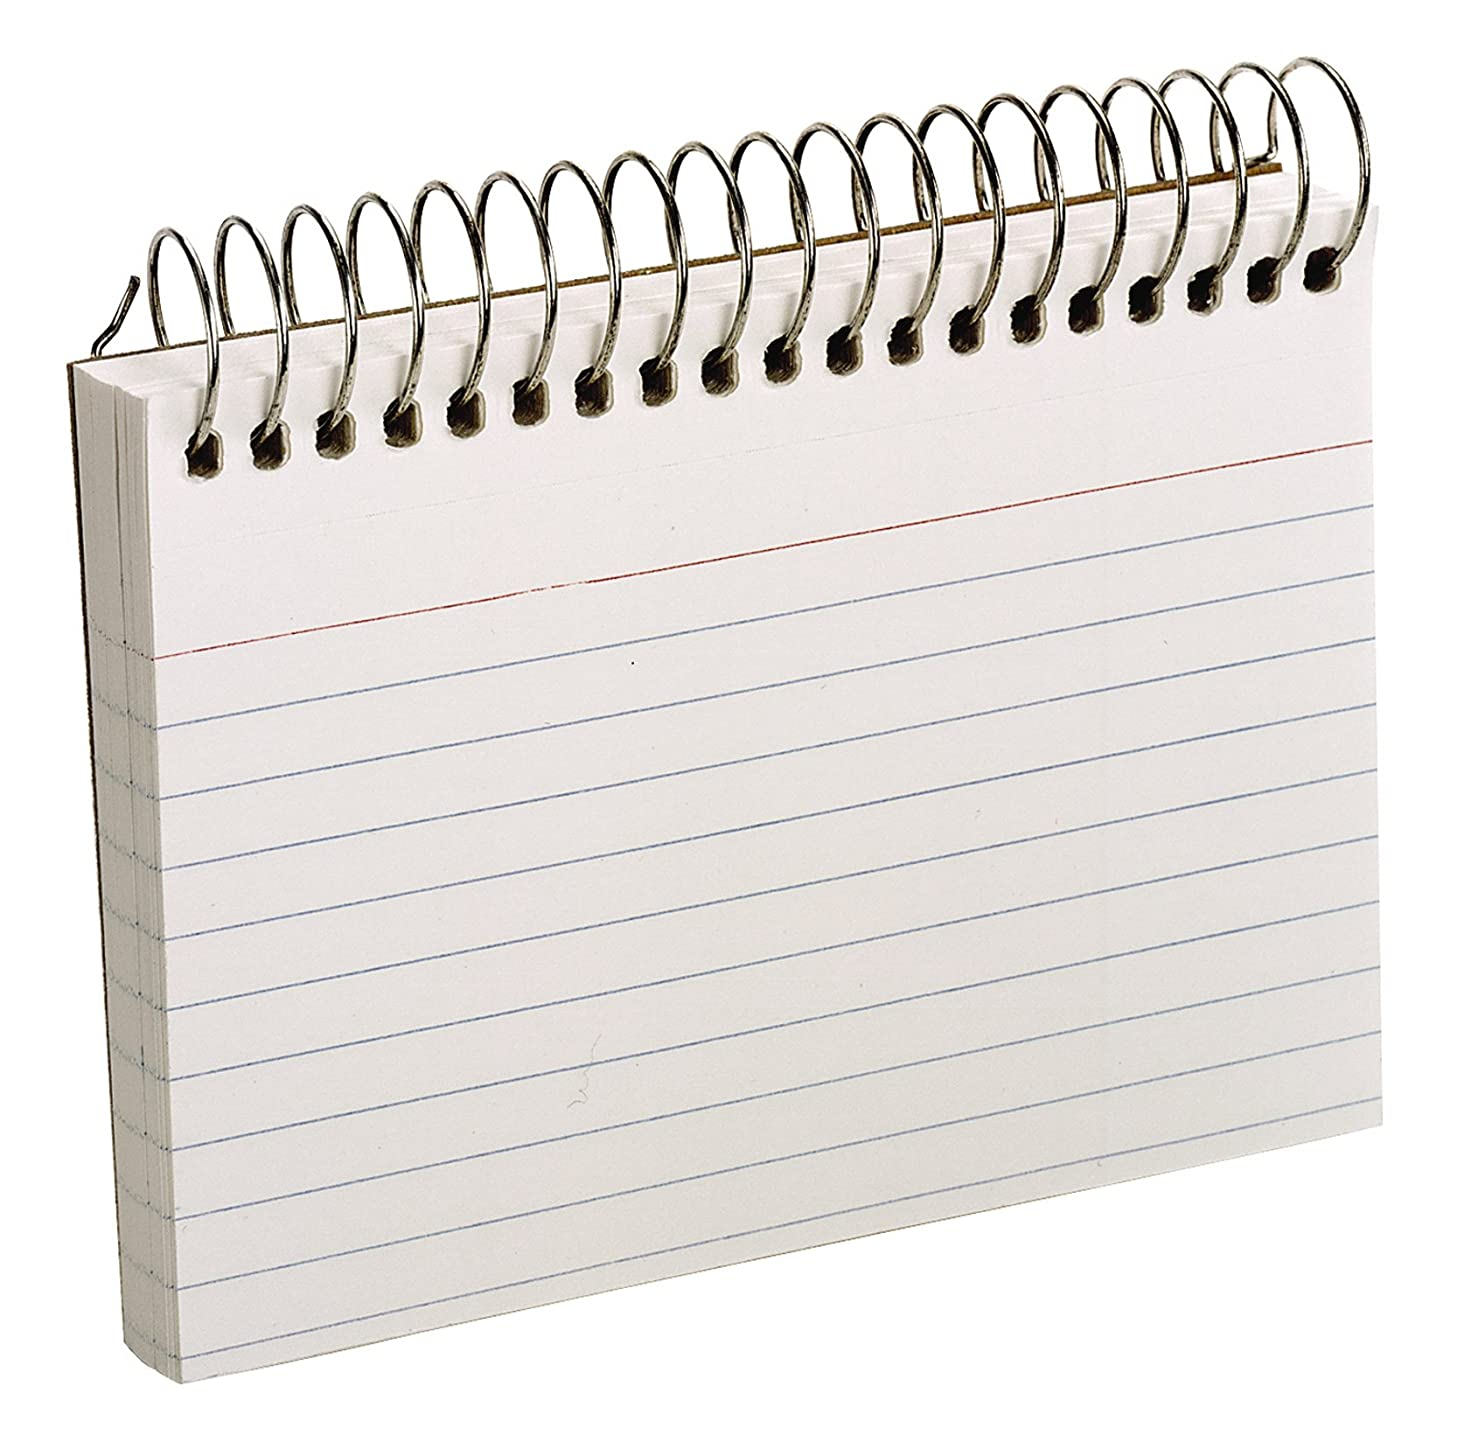 Oxford Spiral Ruled Index Cards, 3 x 5 Inches, White, 50 per Pack (40282)